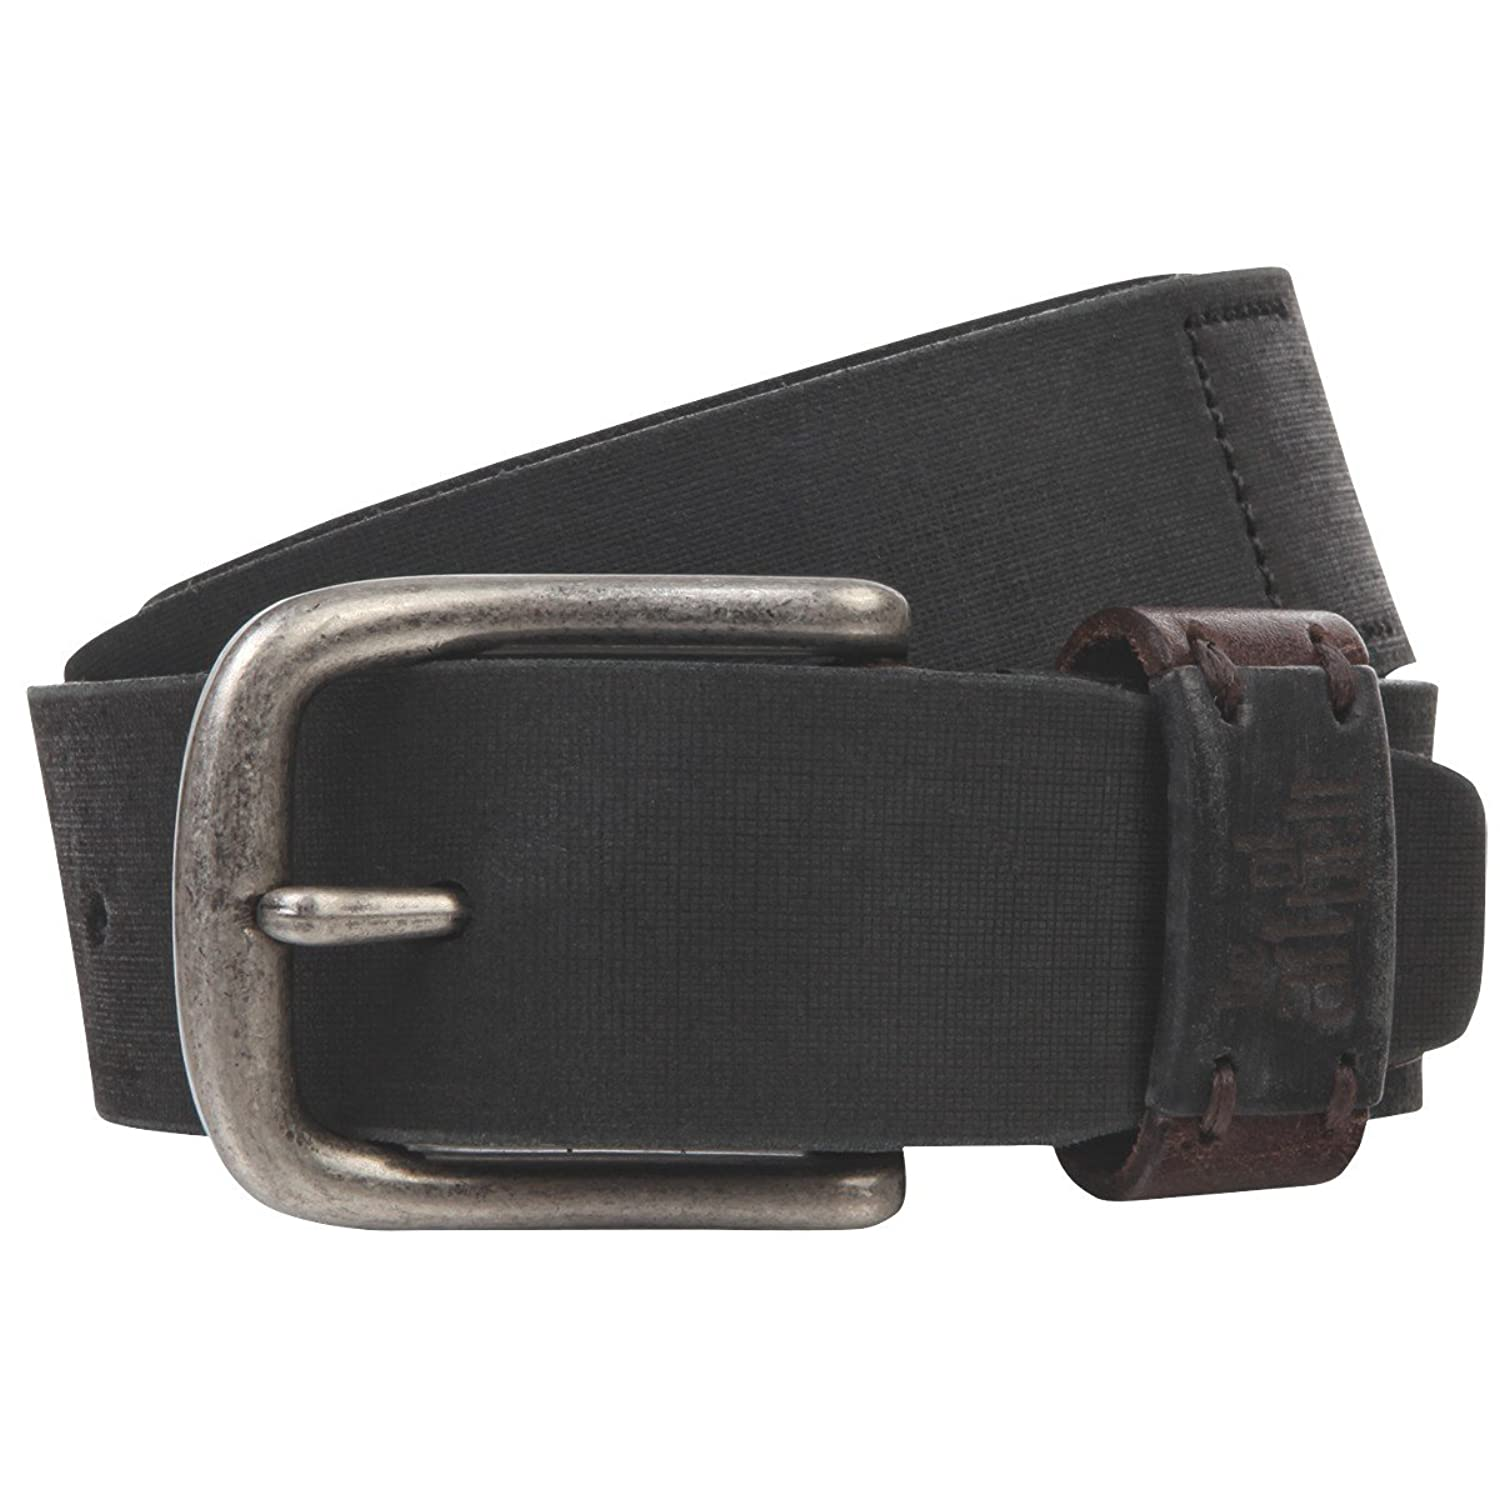 The Art of Belt - Cinturón - para hombre Negro Negro 90